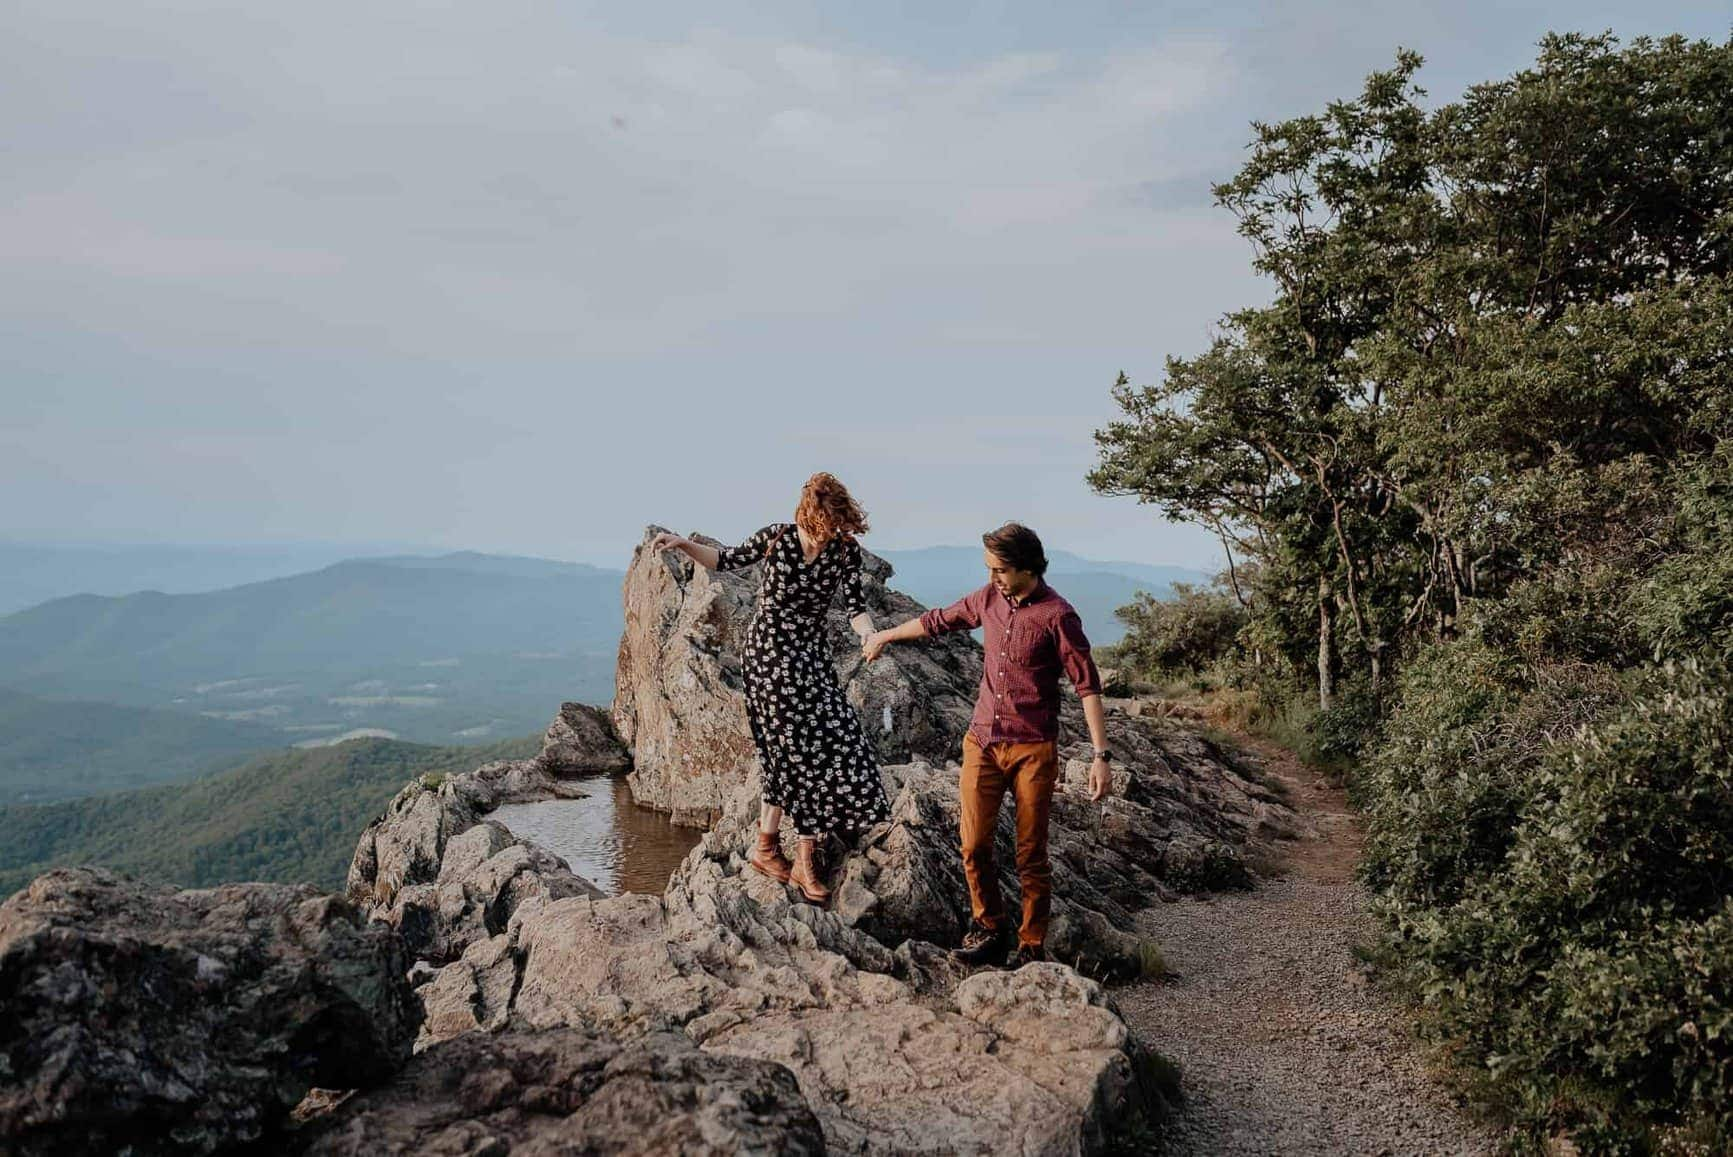 A couple clambers across some large rocks along a cliff in Shenandoah National Park